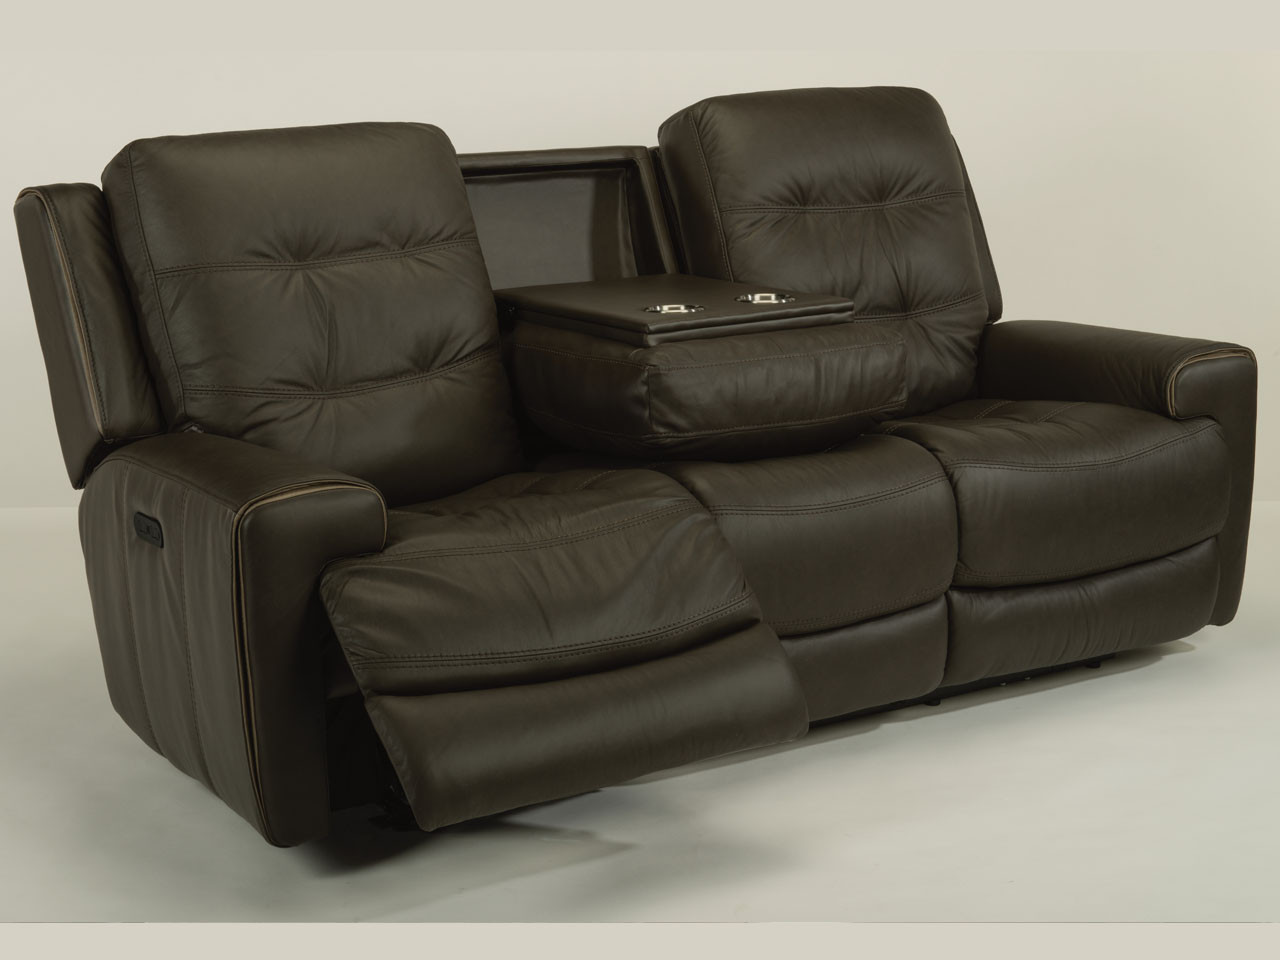 double reclining sofa with fold down table best buy leather power motion reviews baci living room